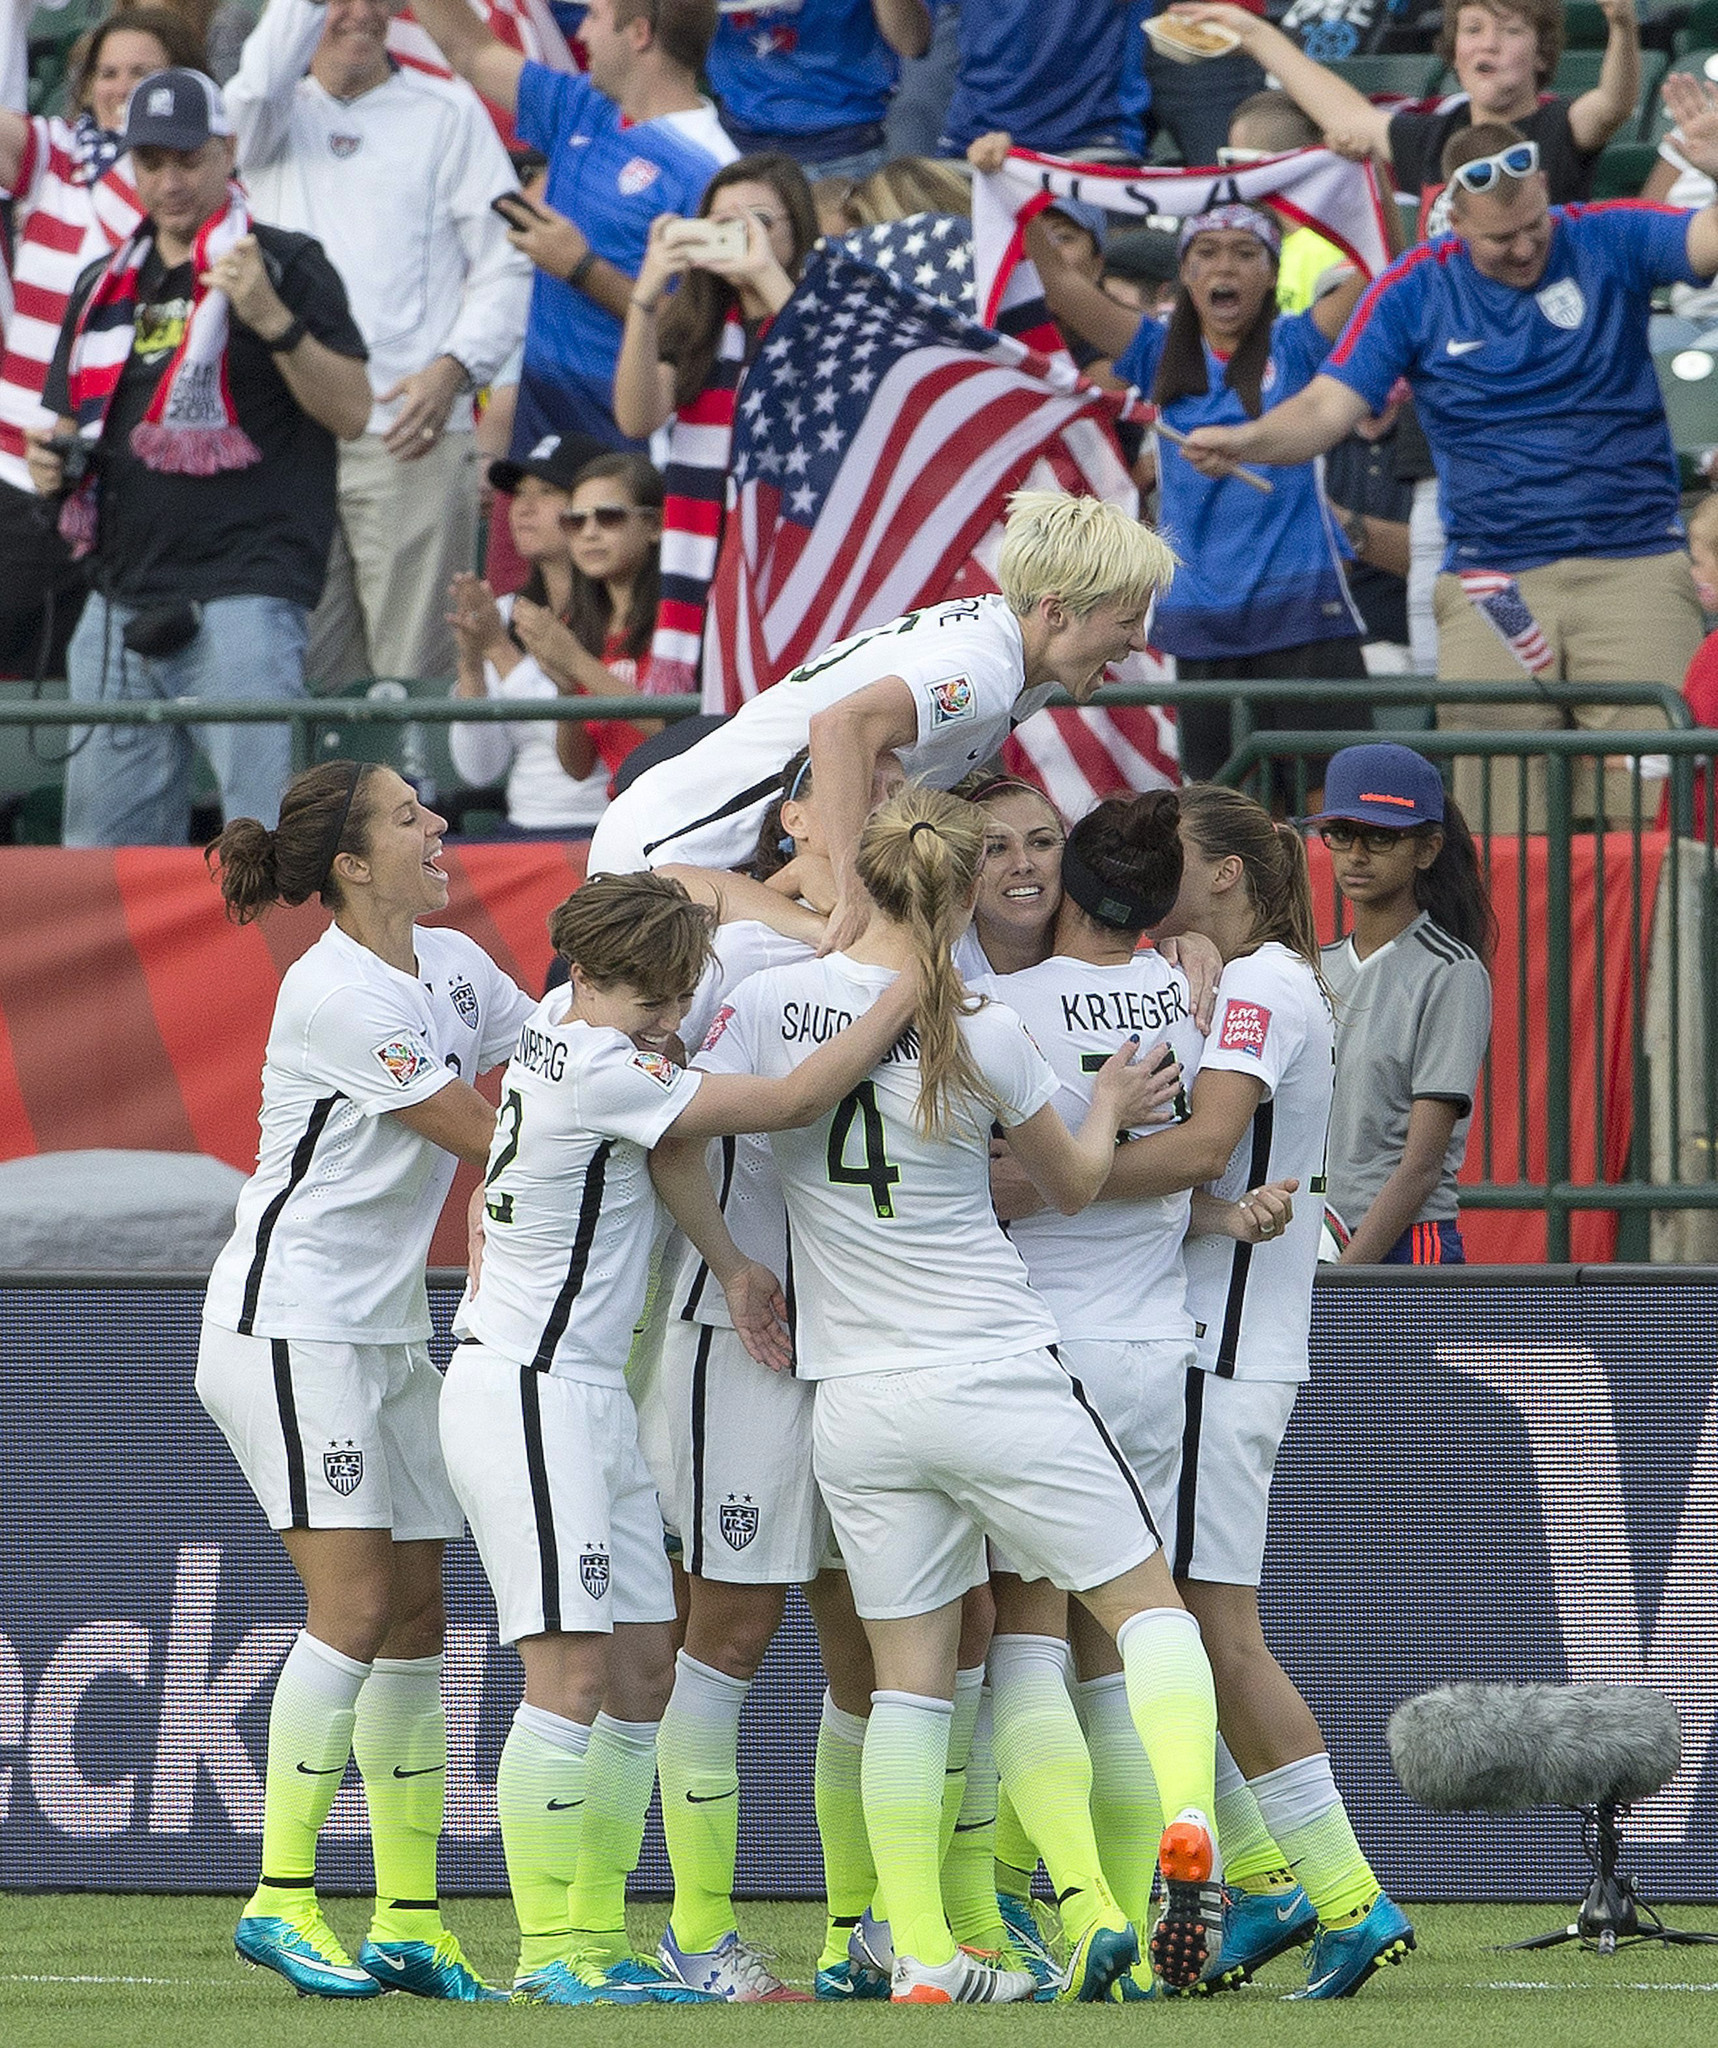 Why the U.S. has such an amazing women's soccer team